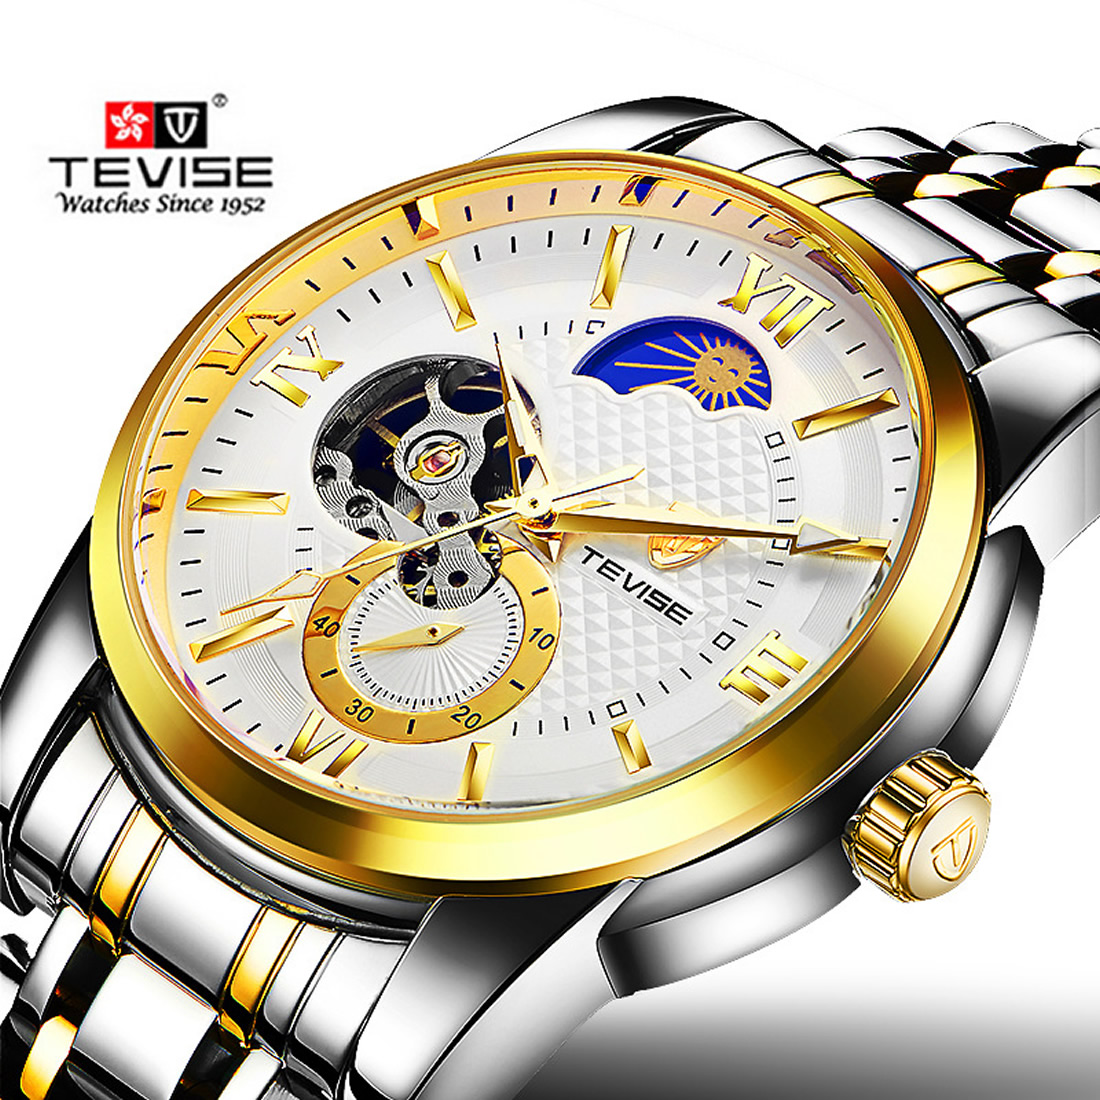 2018 Men Watches Top Brand Luxury Moon Phase Mechanical Watch relogio masculino Business Stainless Steel Quartz wristWatch hot men s watches automatic mechanical watch moon phase clock steel strap business watch top brand wristwatches relogio masculino